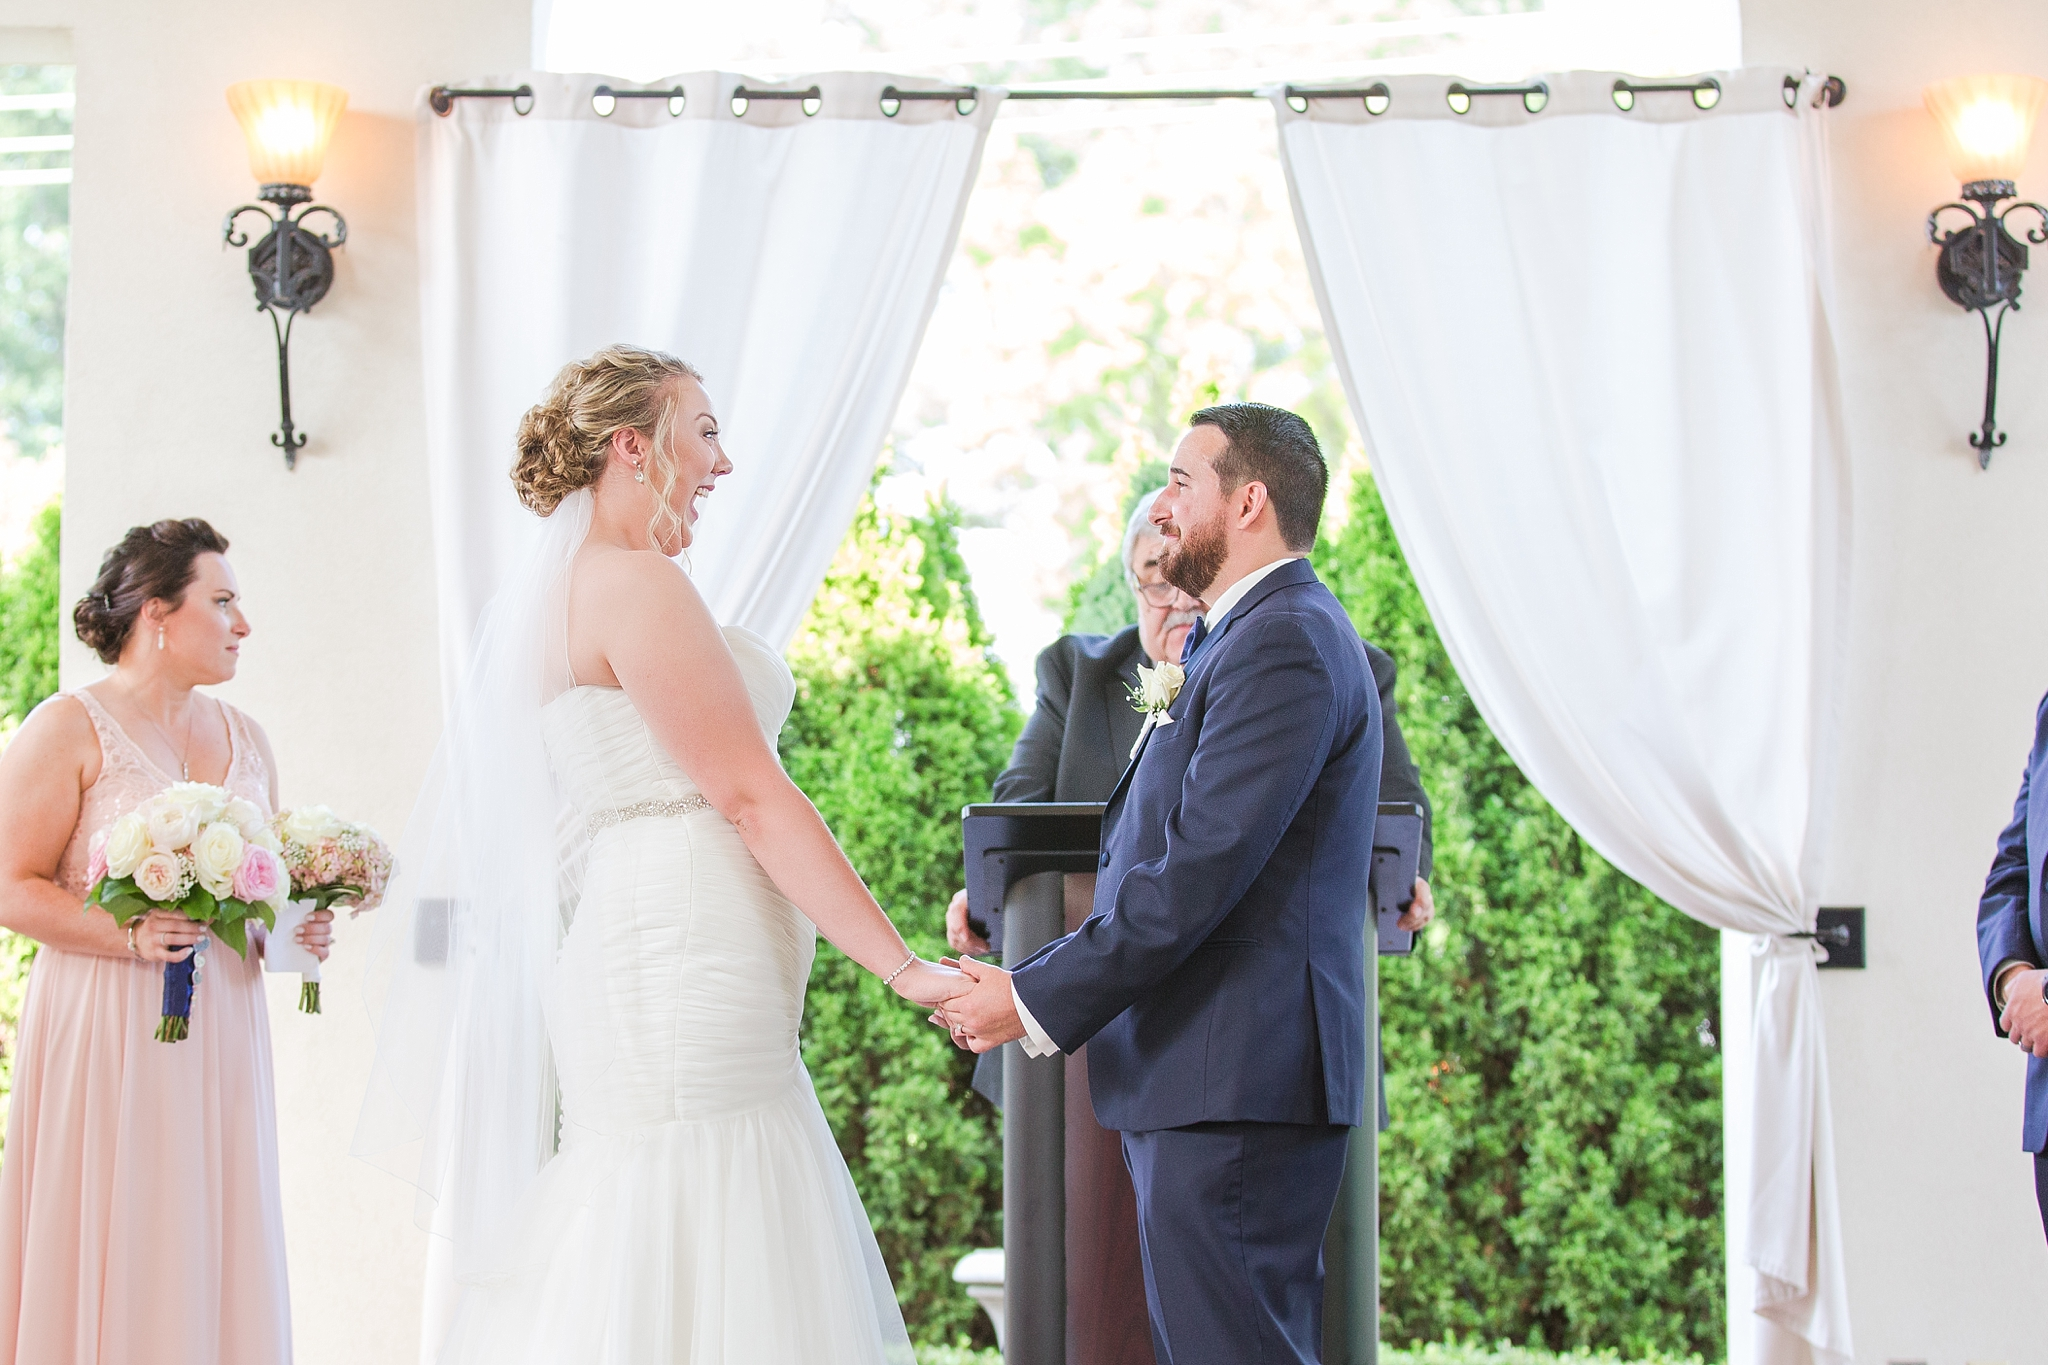 romantic-artful-candid-wedding-photos-in-detroit-lansing-ann-arbor-northern-michigan-and-chicago-by-courtney-carolyn-photography_0056.jpg